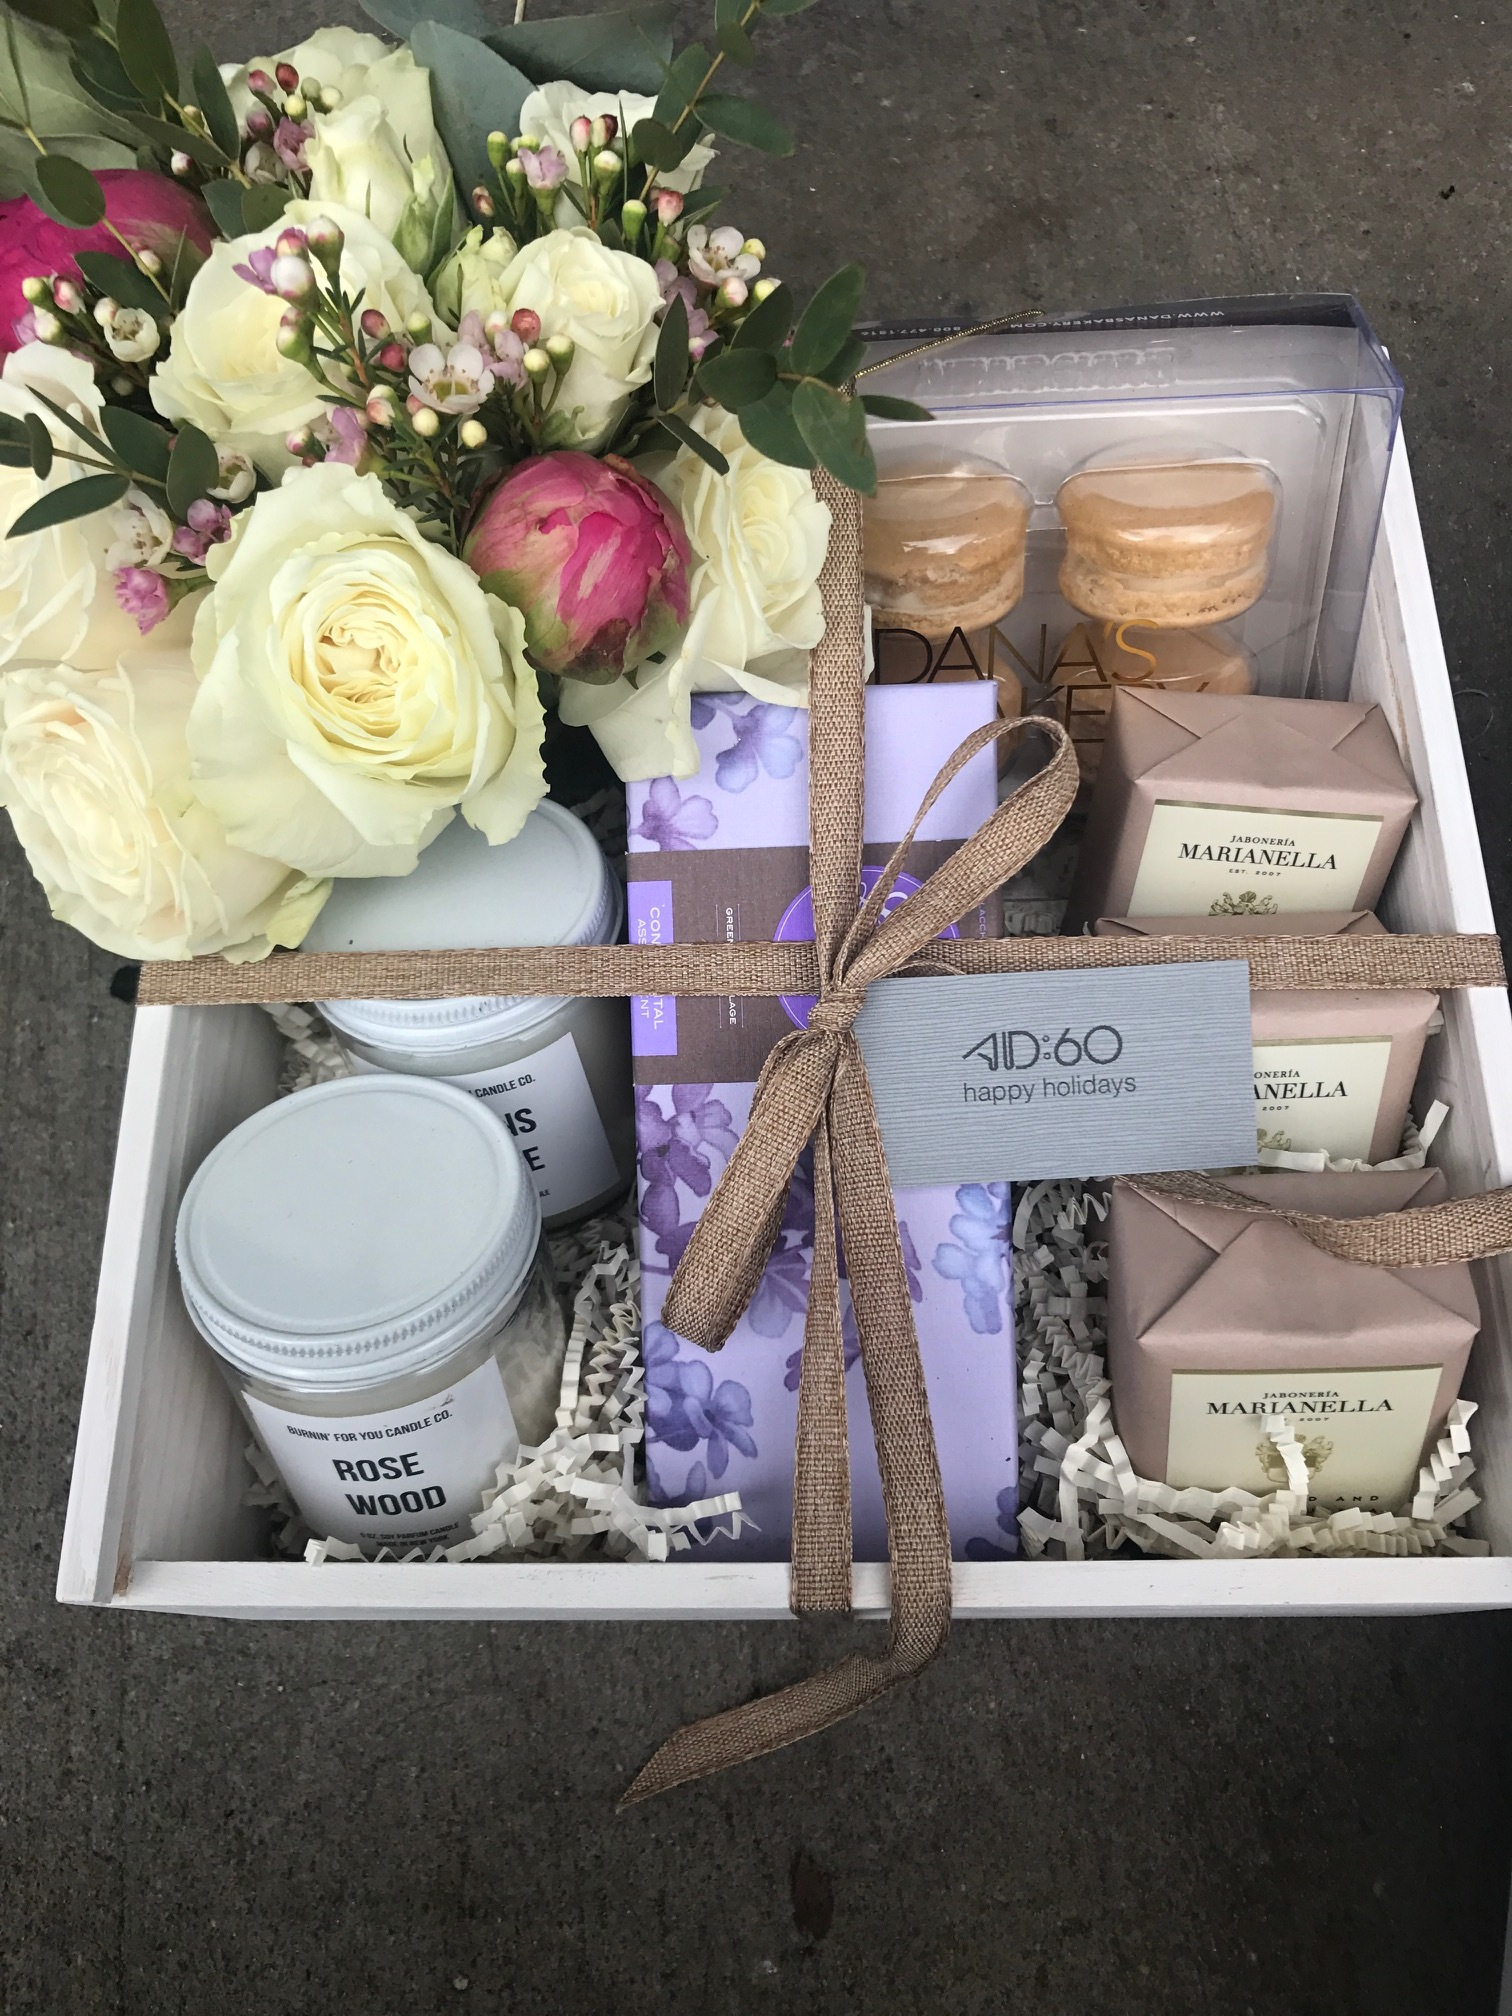 AD60 Giftboxes